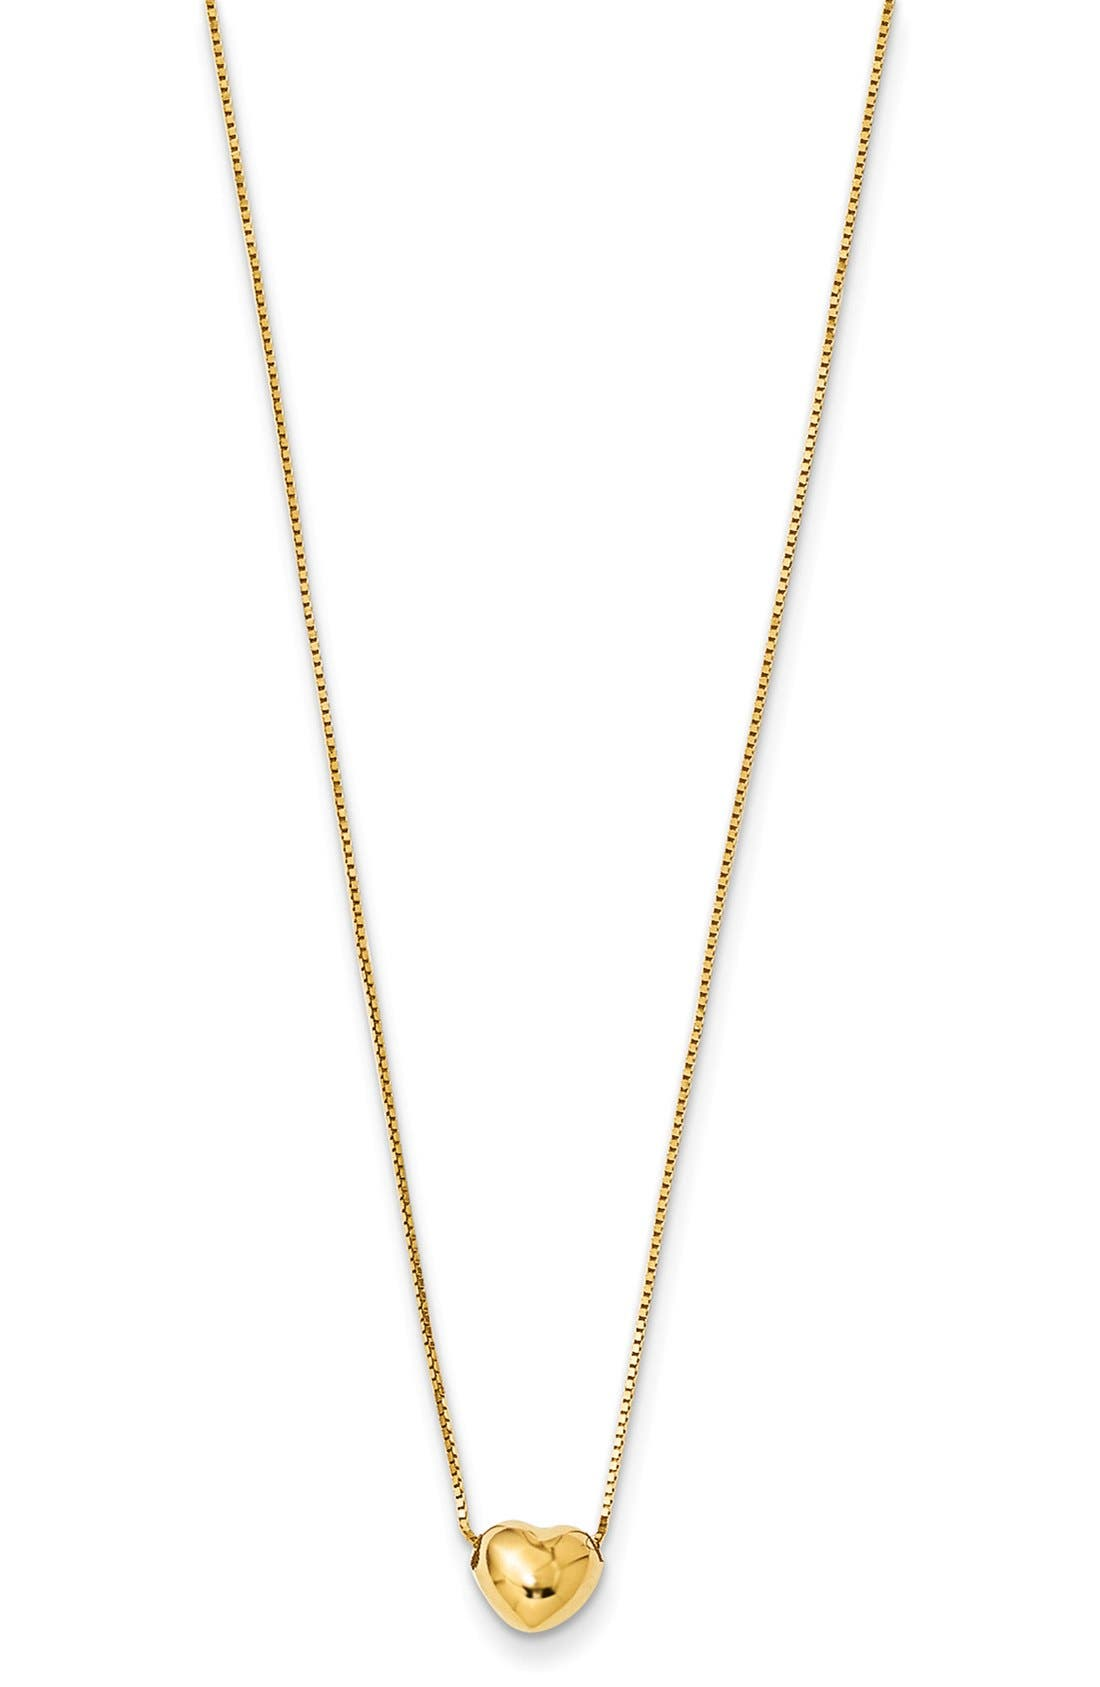 Heart Pendant Necklace,                         Main,                         color, Yellow Gold